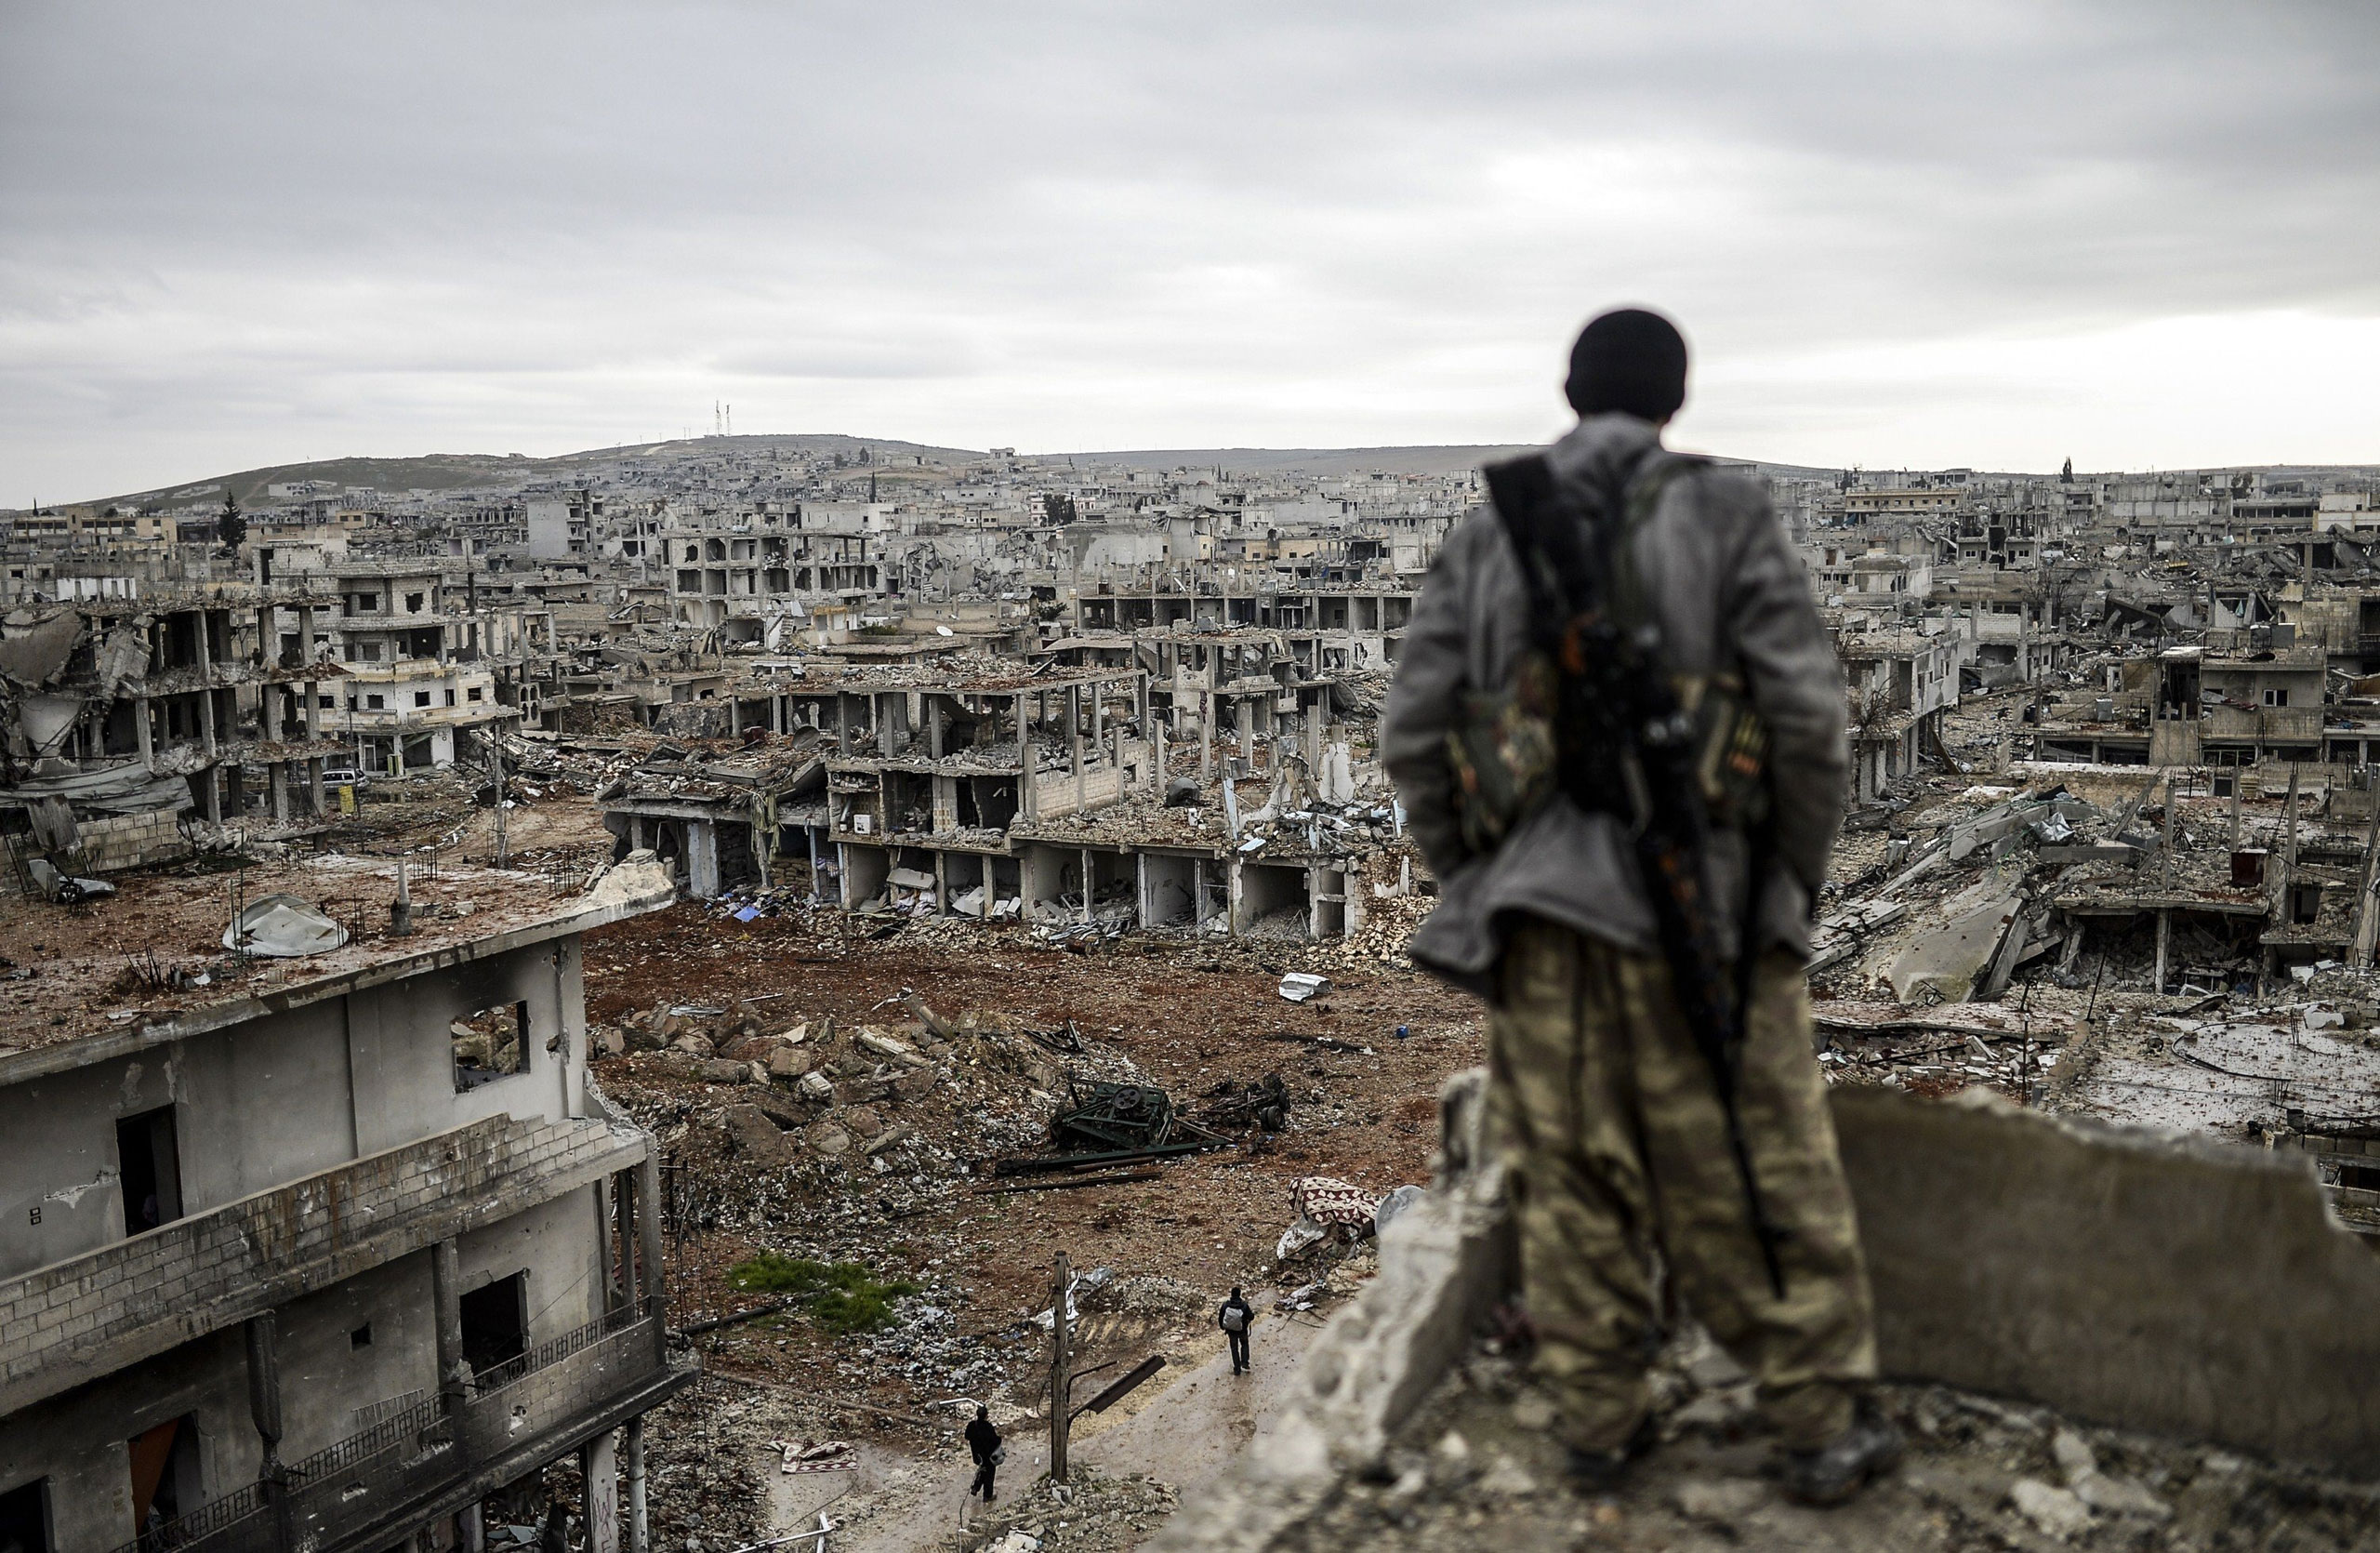 Musa, a 25-year-old Kurdish marksman, stands atop a building as he looks at the destroyed Syrian town of Kobane, also known as Ain al-Arab, on January 30, 2015. Kurdish forces recaptured the town on the Turkish frontier on January 26, in a symbolic blow to the jihadists who have seized large swathes of territory in their onslaught across Syria and Iraq.